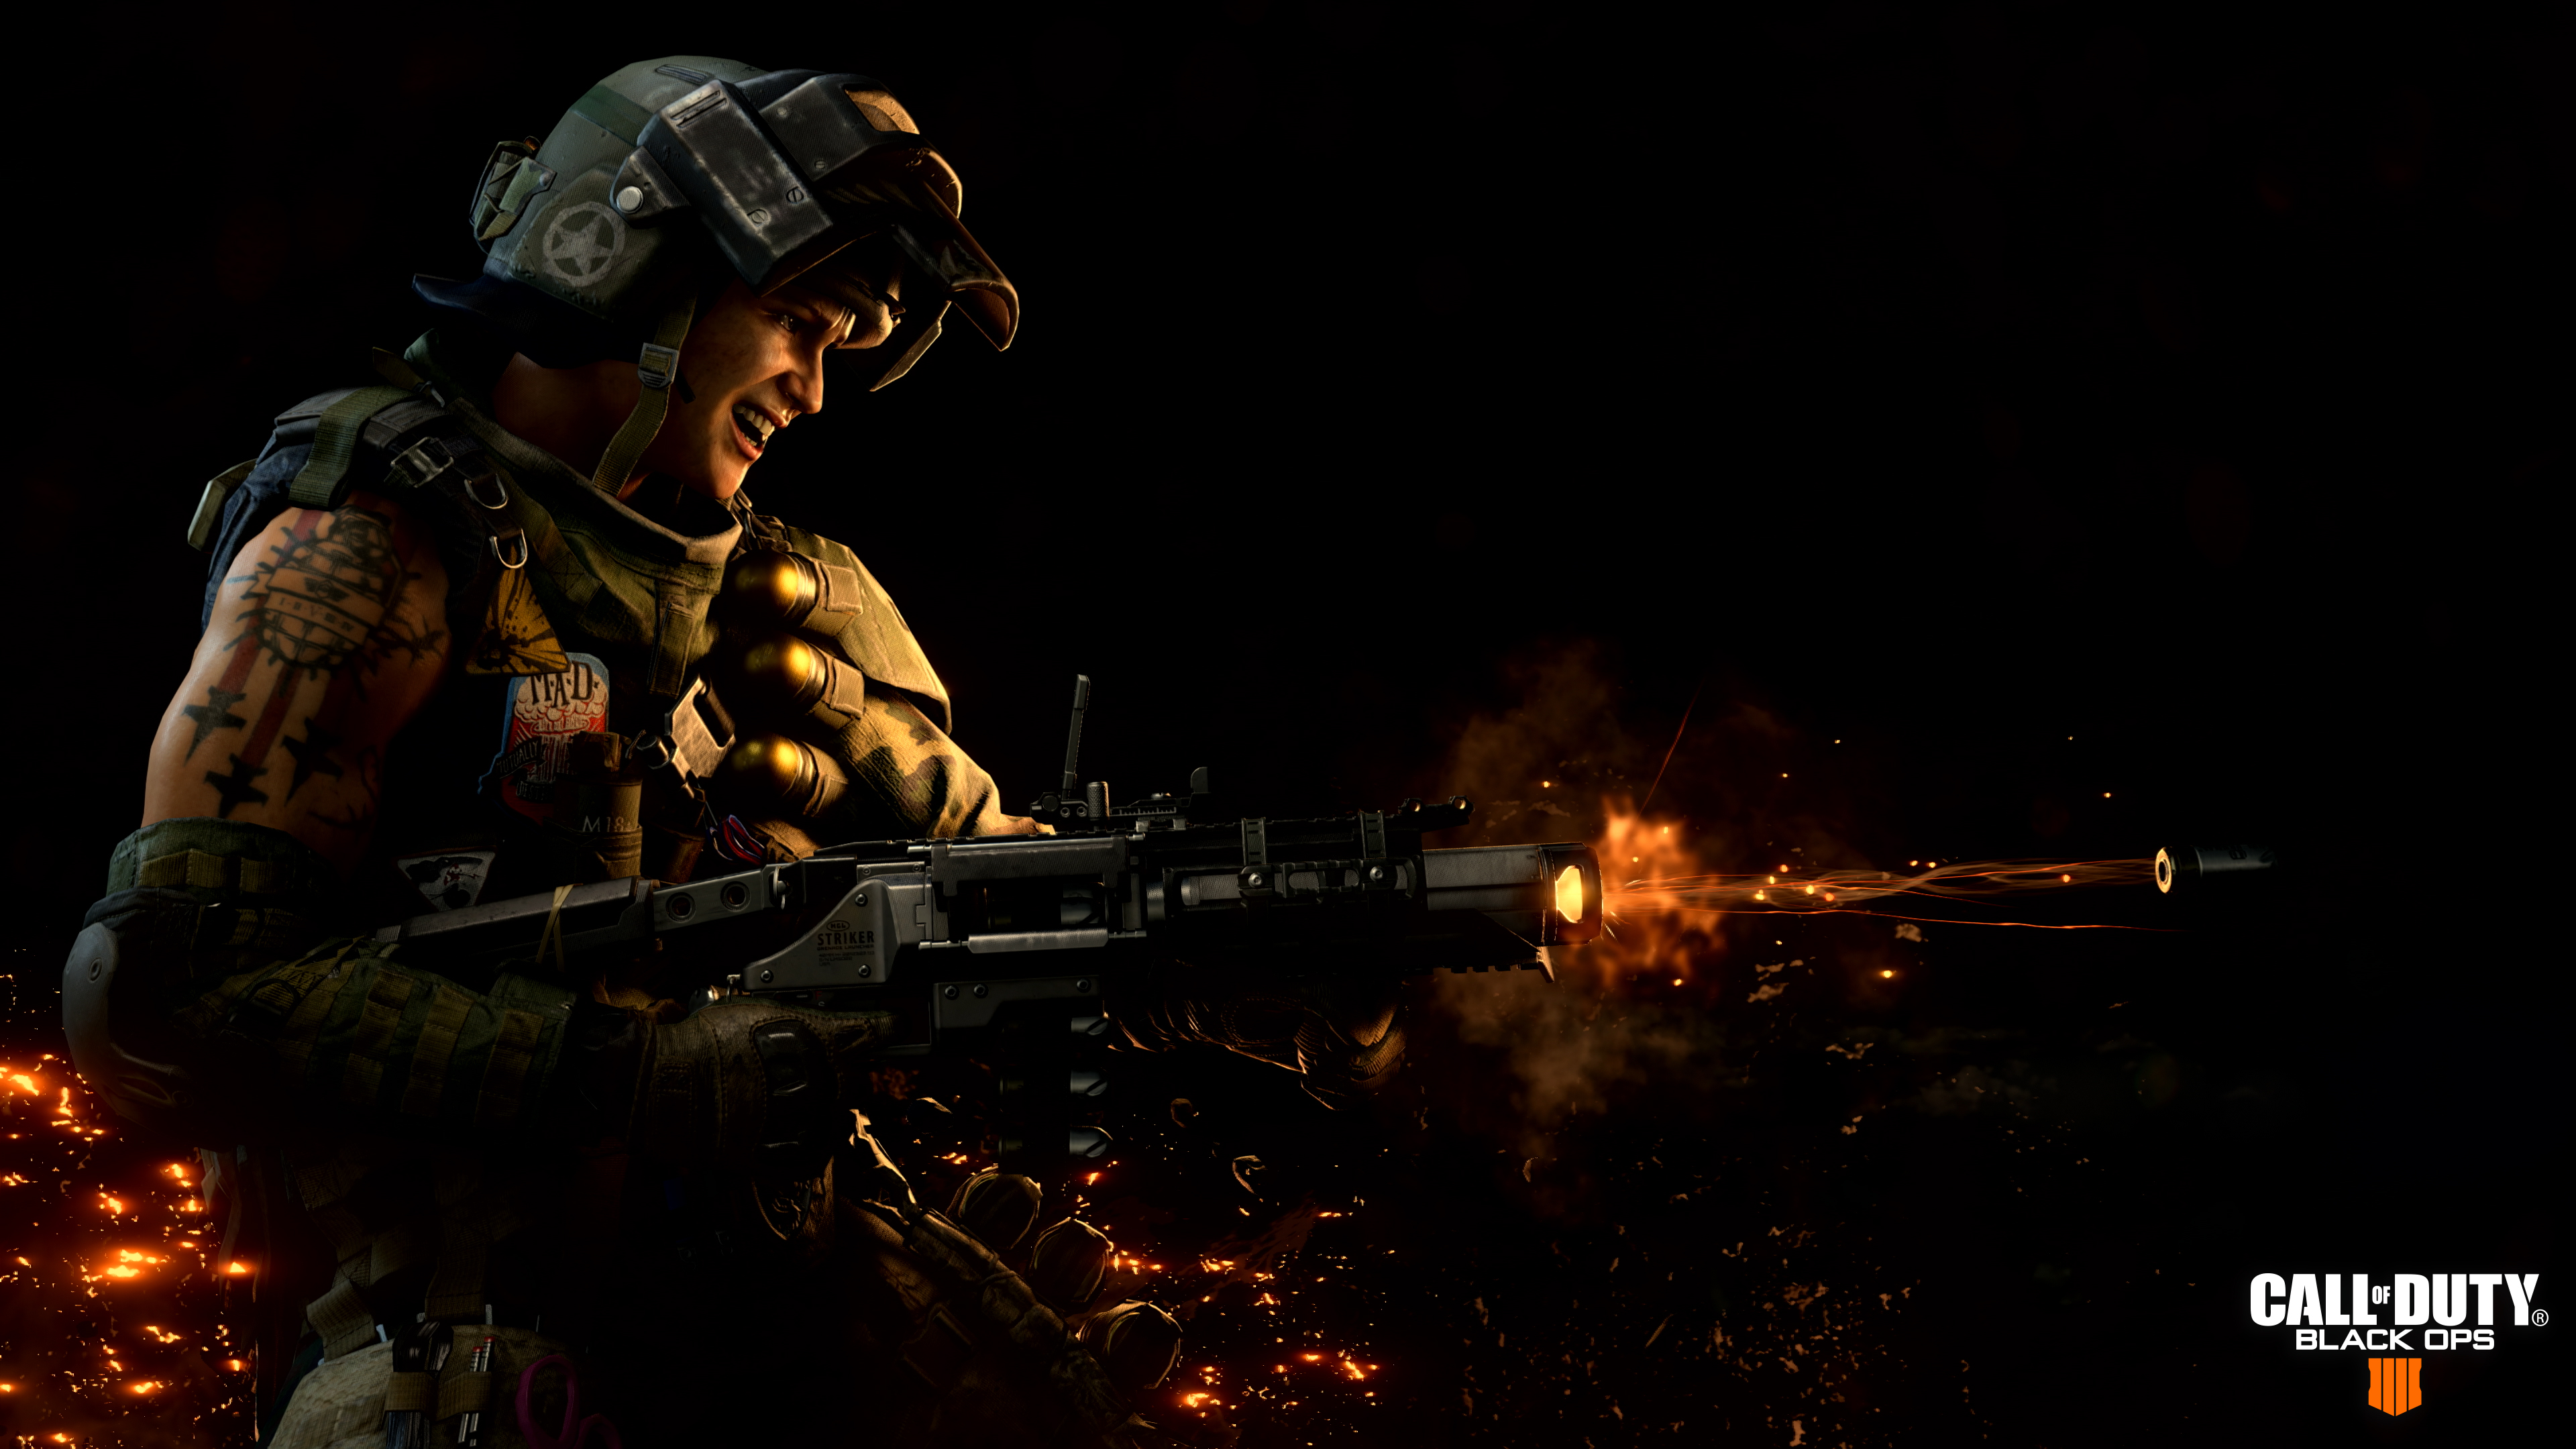 Call of Duty: Black Ops 4's Zombies mode first details - Polygon Call Of Duty Black Ops Zombie Maps List on